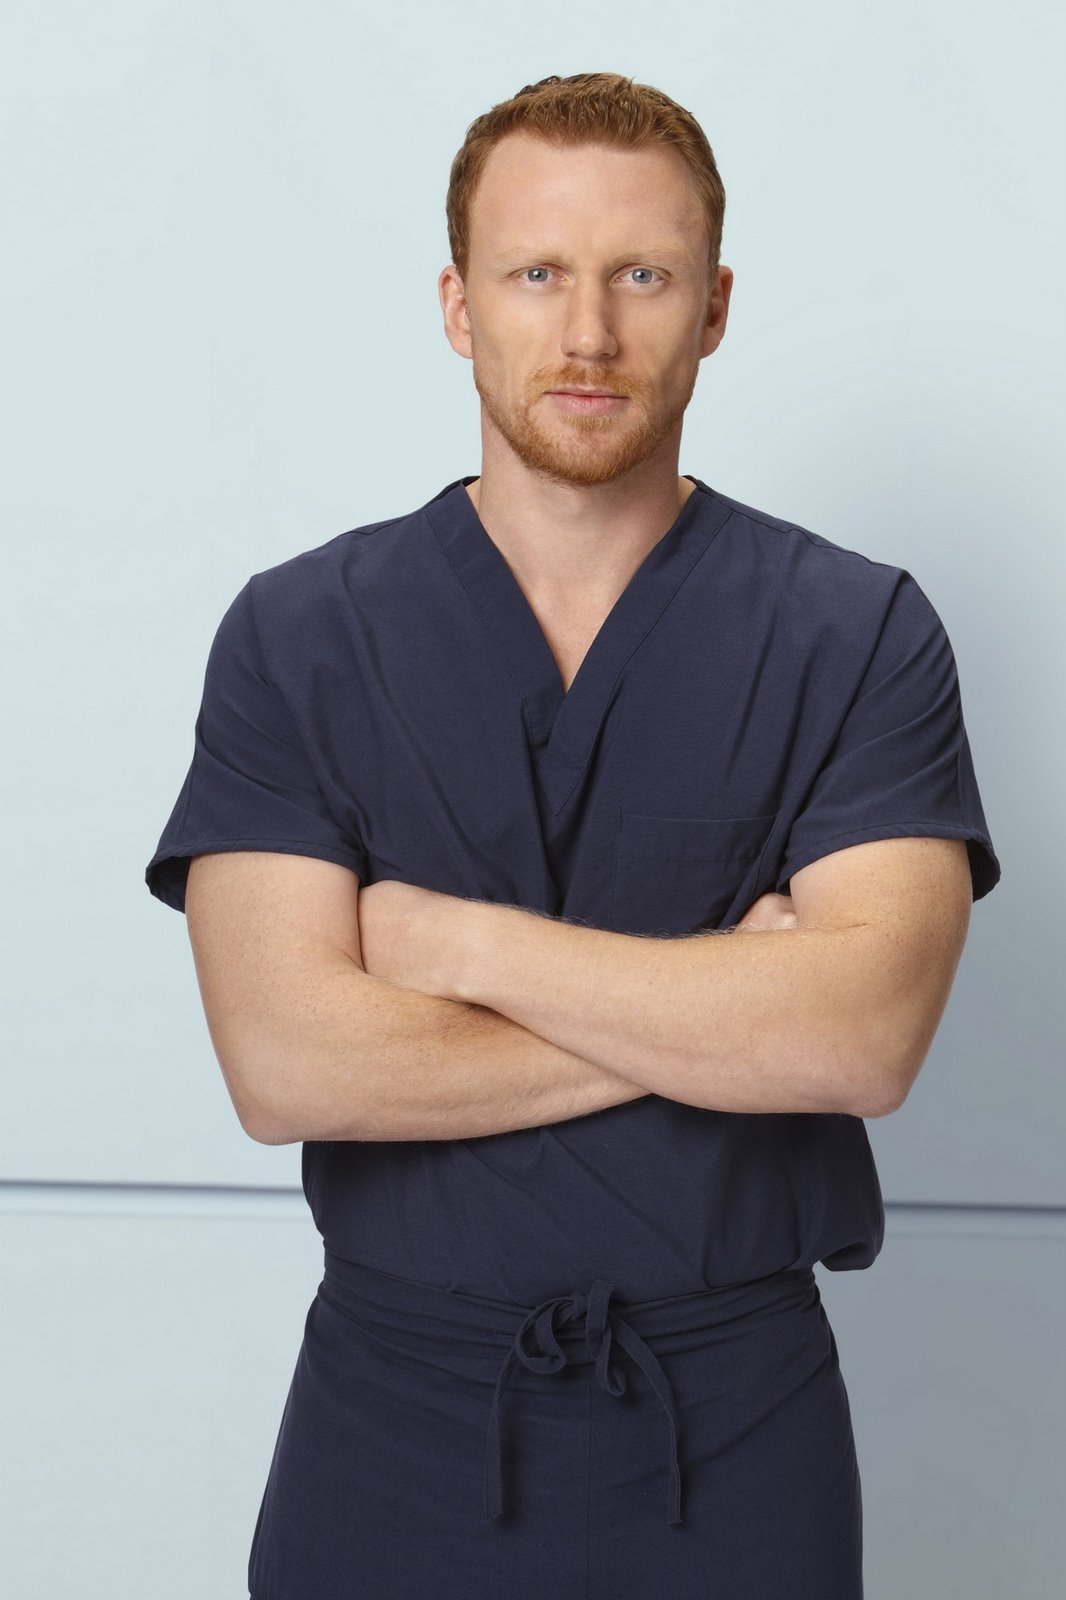 http://1.bp.blogspot.com/-TX2vn_d2gUo/To8FGqmkRjI/AAAAAAAAAnY/_b82-K_dyGw/s1600/Owen-Hunt-is-Official-D-greys-anatomy-4480459-1066-1600.jpeg